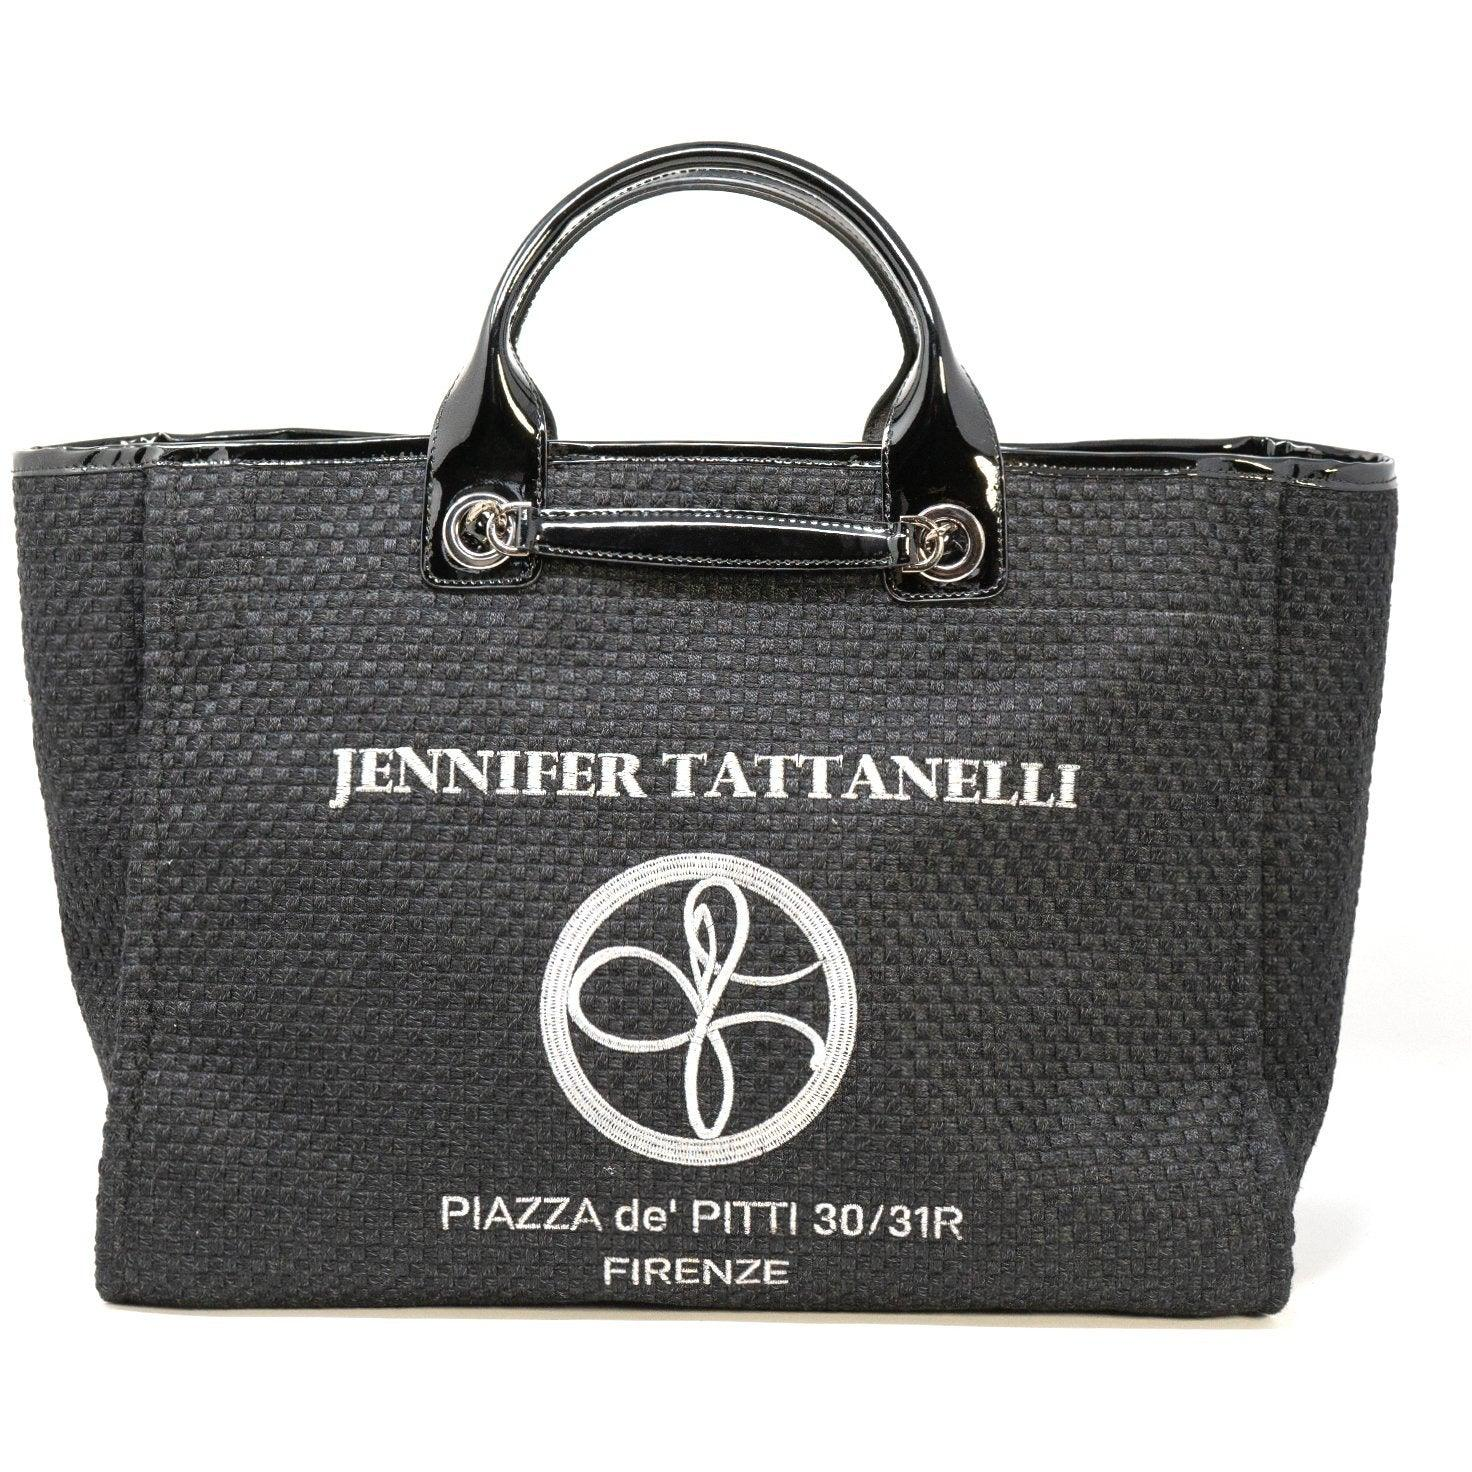 The Hamptons Bag in Patent Black Leather